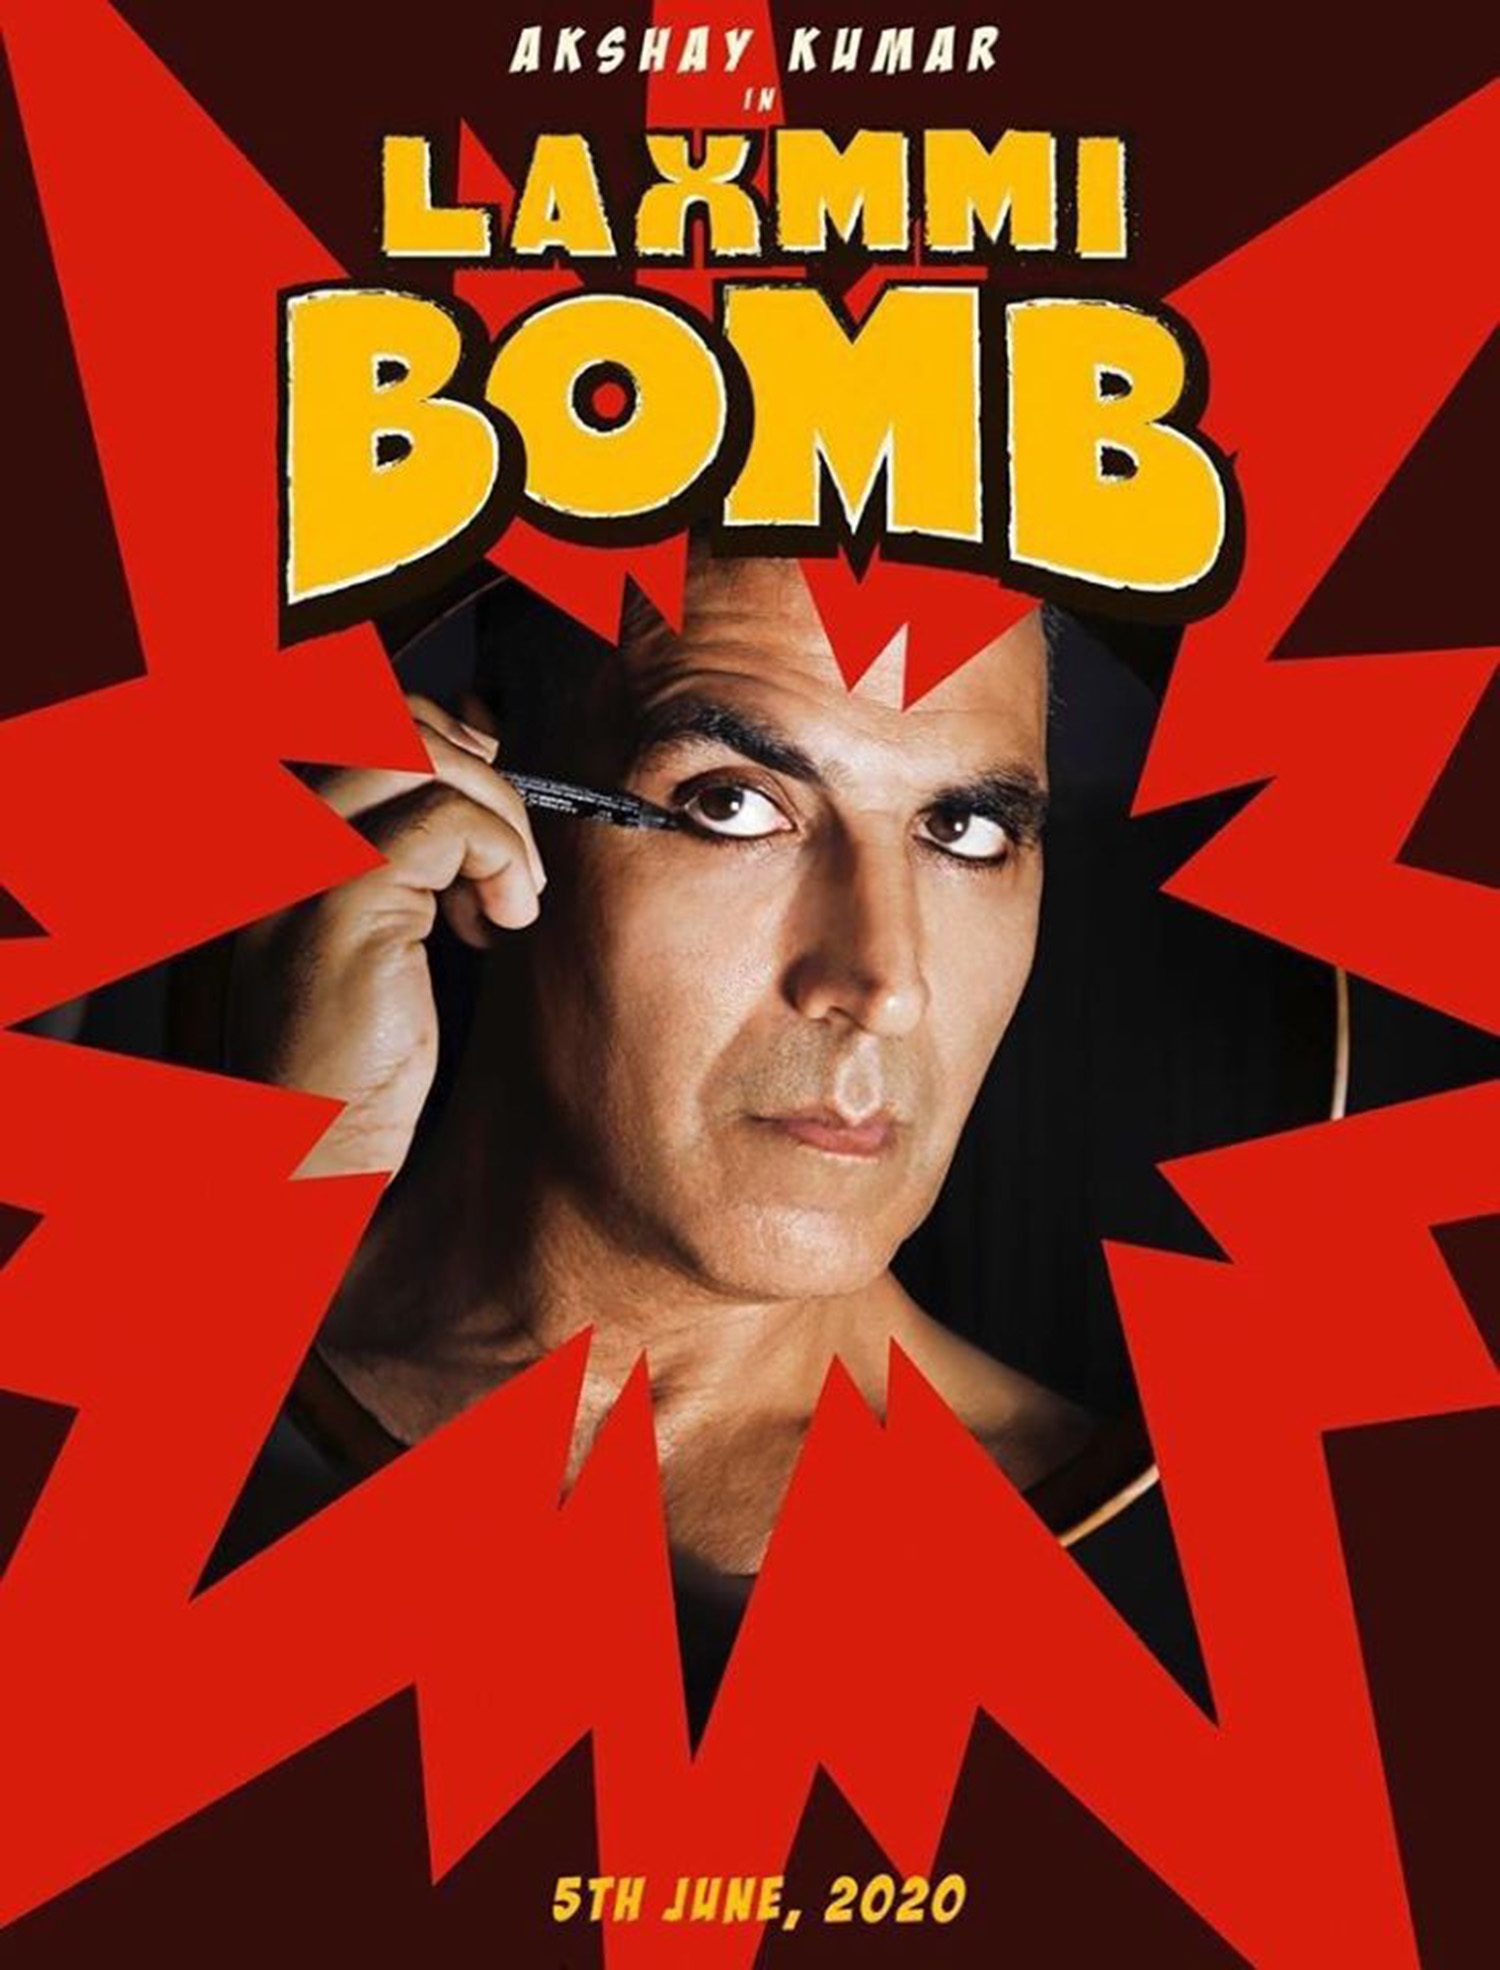 Laaxmi Bomb First Look Poster,Laaxmi Bomb Poster,Laaxmi Bomb New Movie,Kanchana Remake Laaxmi Bomb,Kanchana Hindi Remake First Look Poster,Akshay Kumar,akshay kumar's Laaxmi Bomb poster,raghava lawrence,kaira advani,akshay kumar in Laaxmi Bomb,akshay kumar in kanchana remake